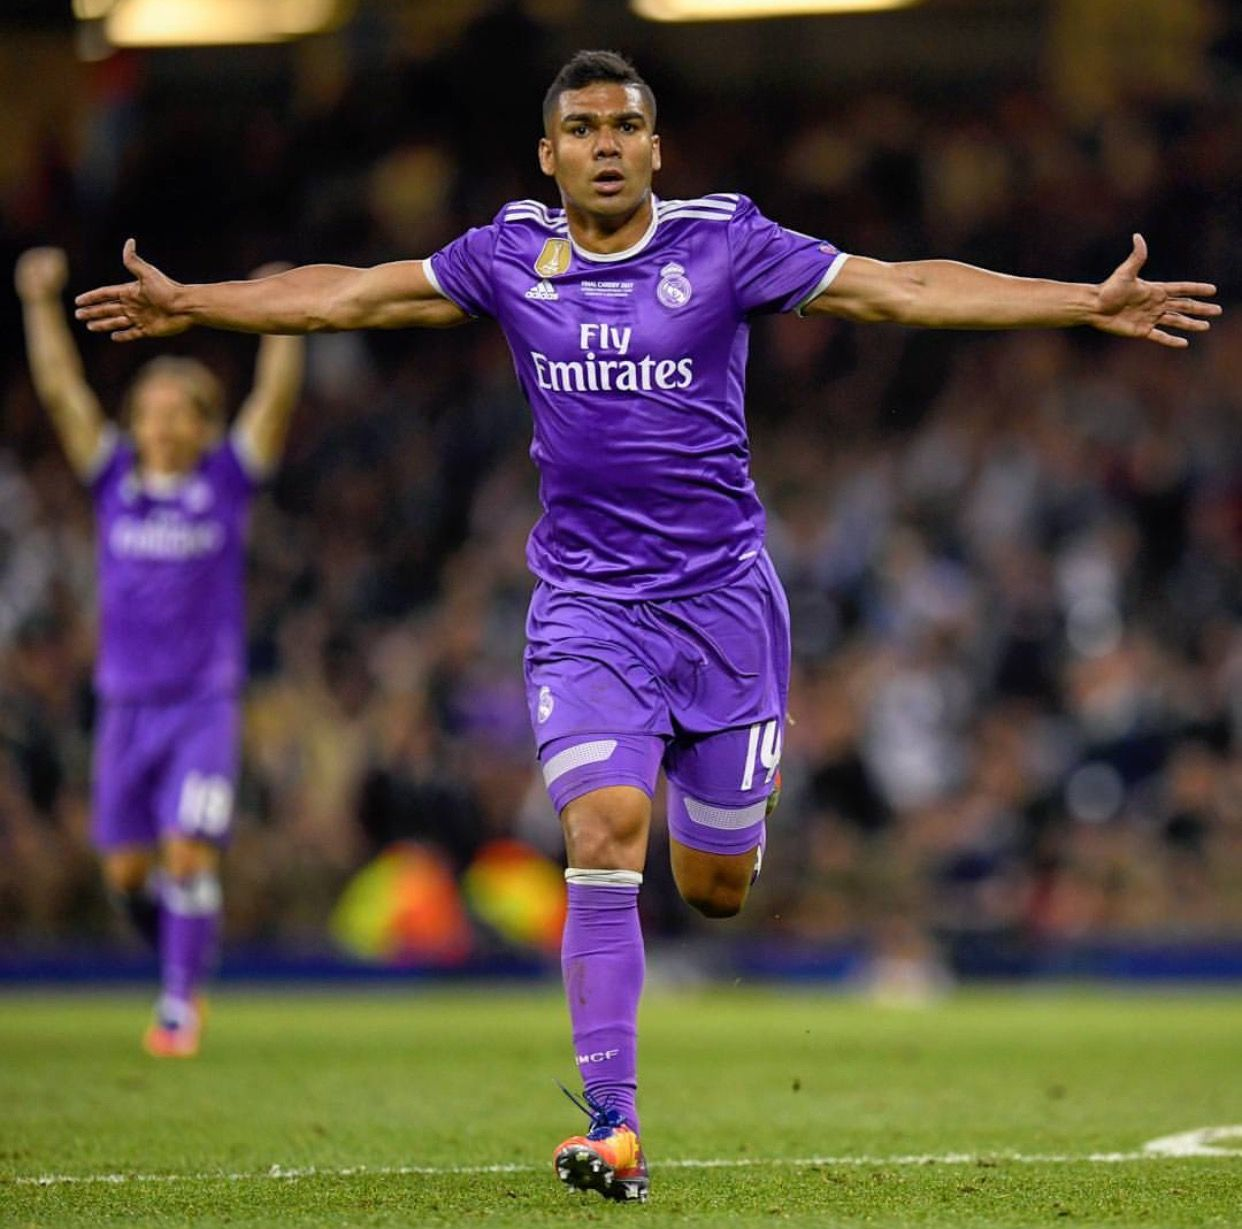 UCL 2017 Casemiro 2 1 Real Madrid Pinterest